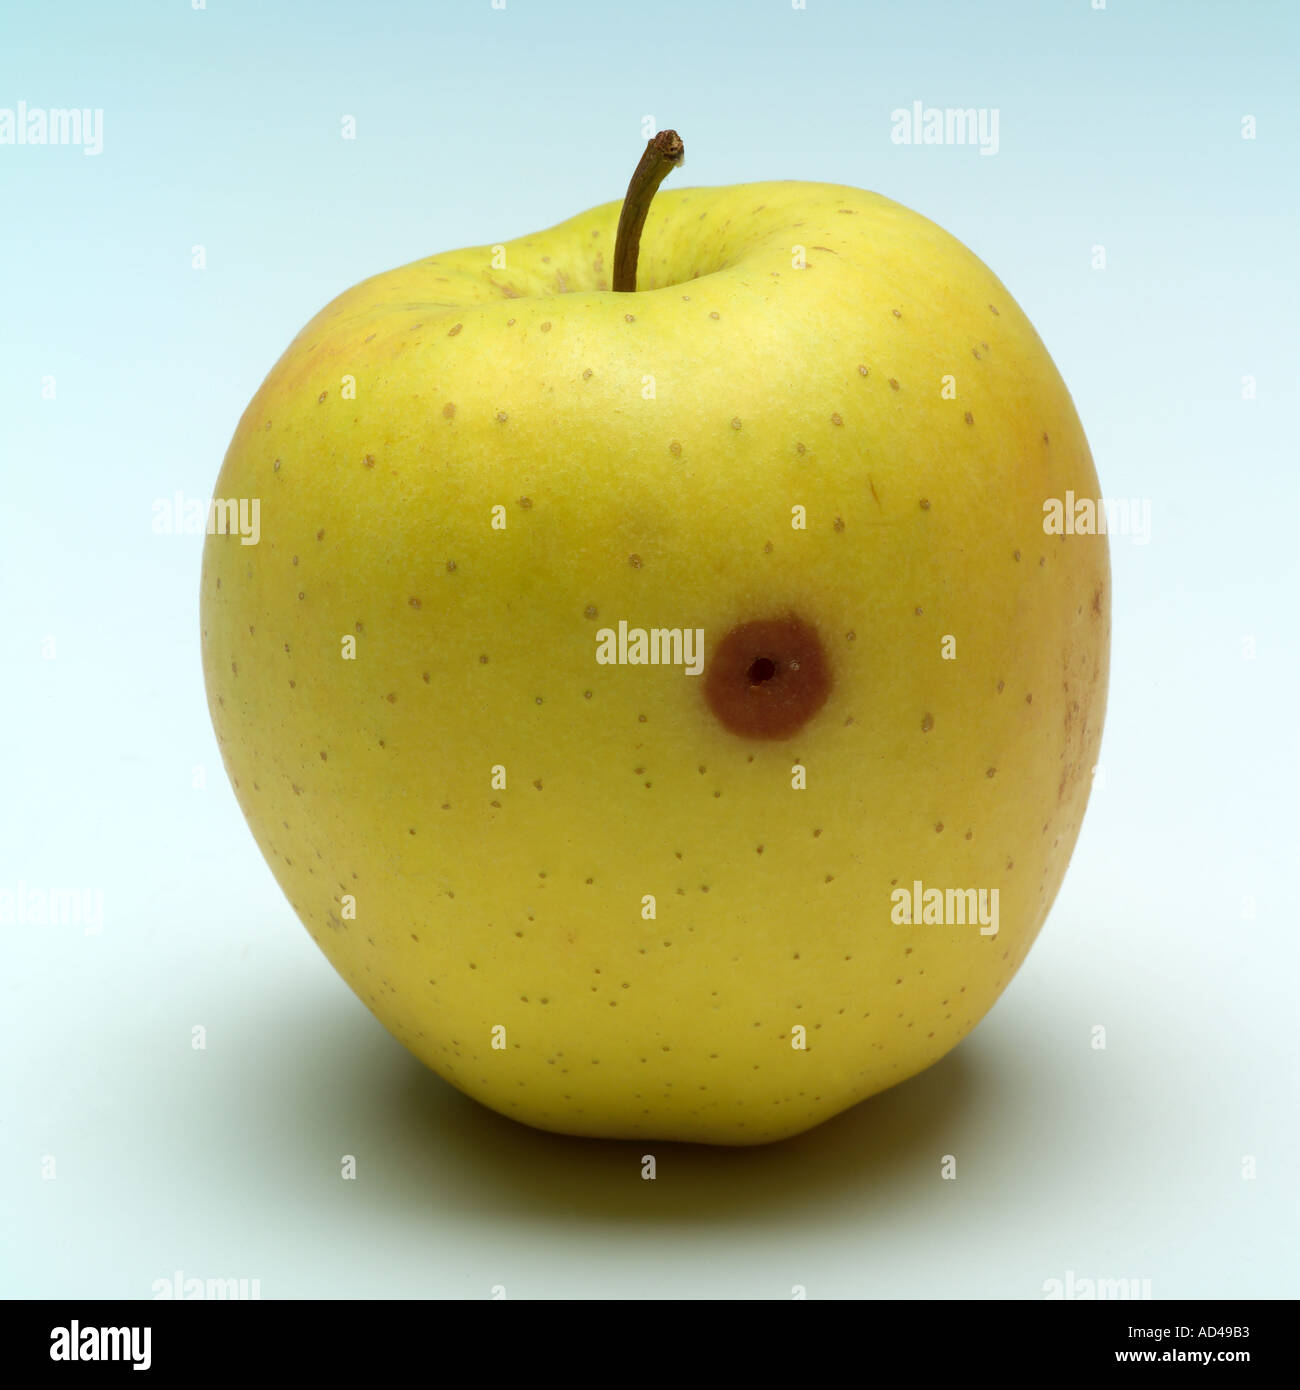 Golden Delicious apple with small rotten part and grub's hole - Stock Image